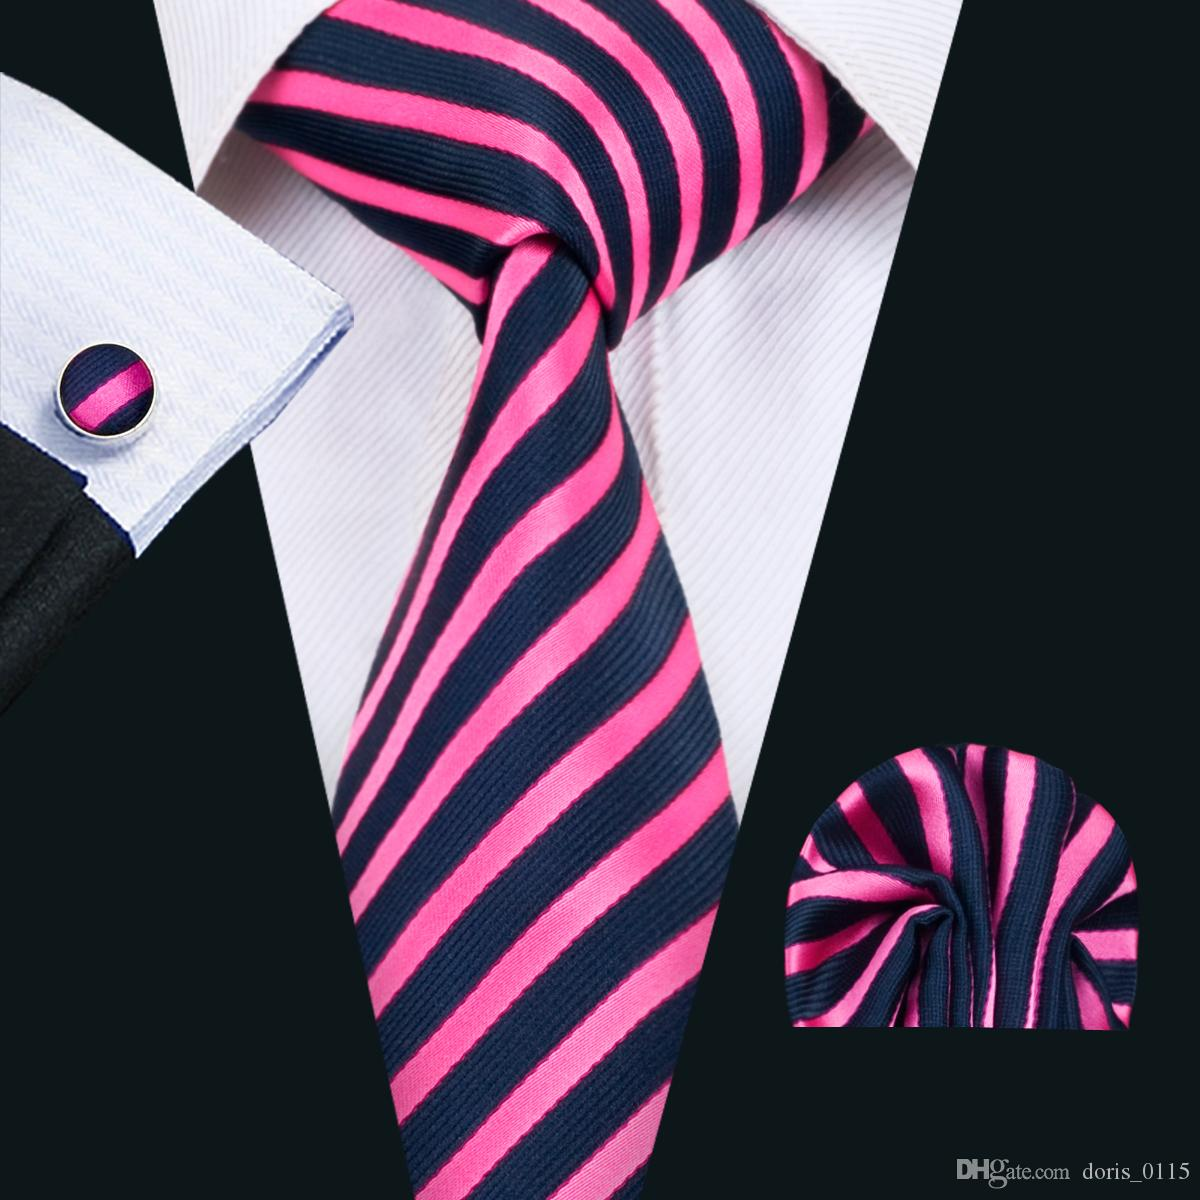 Classic Silk Mens Neckties Stripes Tie Sets Pink Tie for Men Tie Hankerchief Cufflinks Set Jacquard Woven Business Wedding Party Gift N-1403